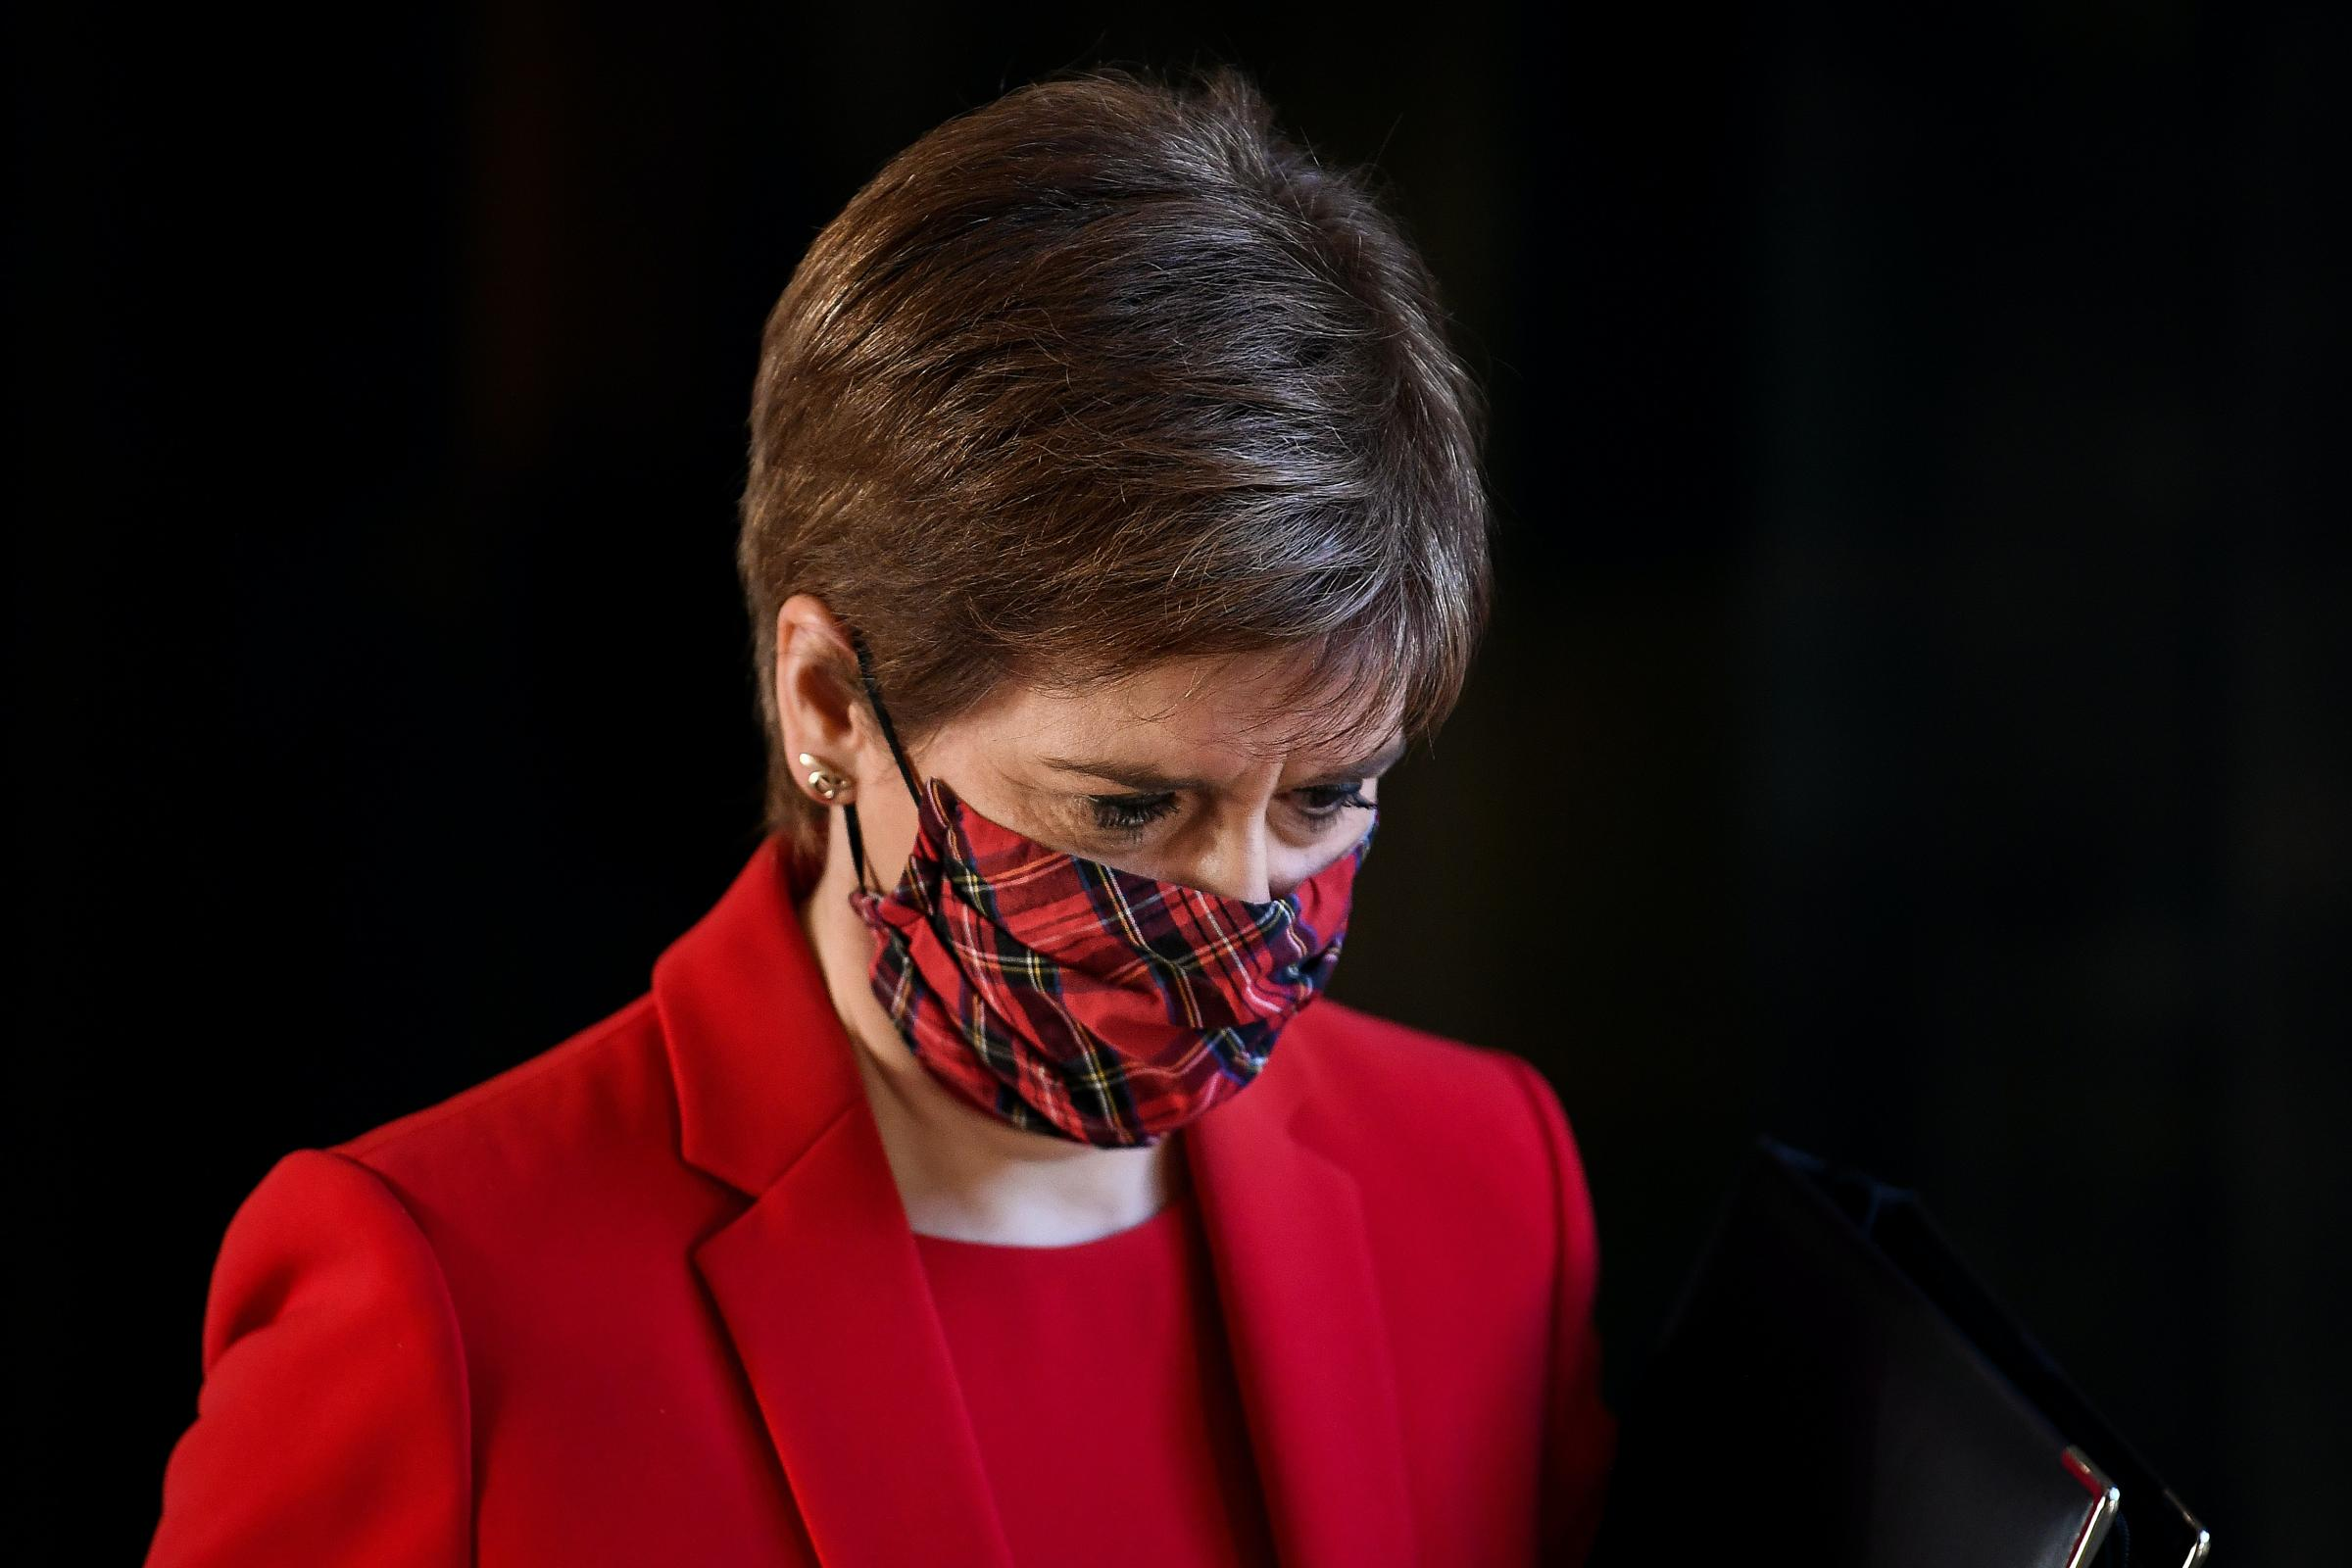 Nicola Sturgeon to make lockdown review announcement - here's what could change